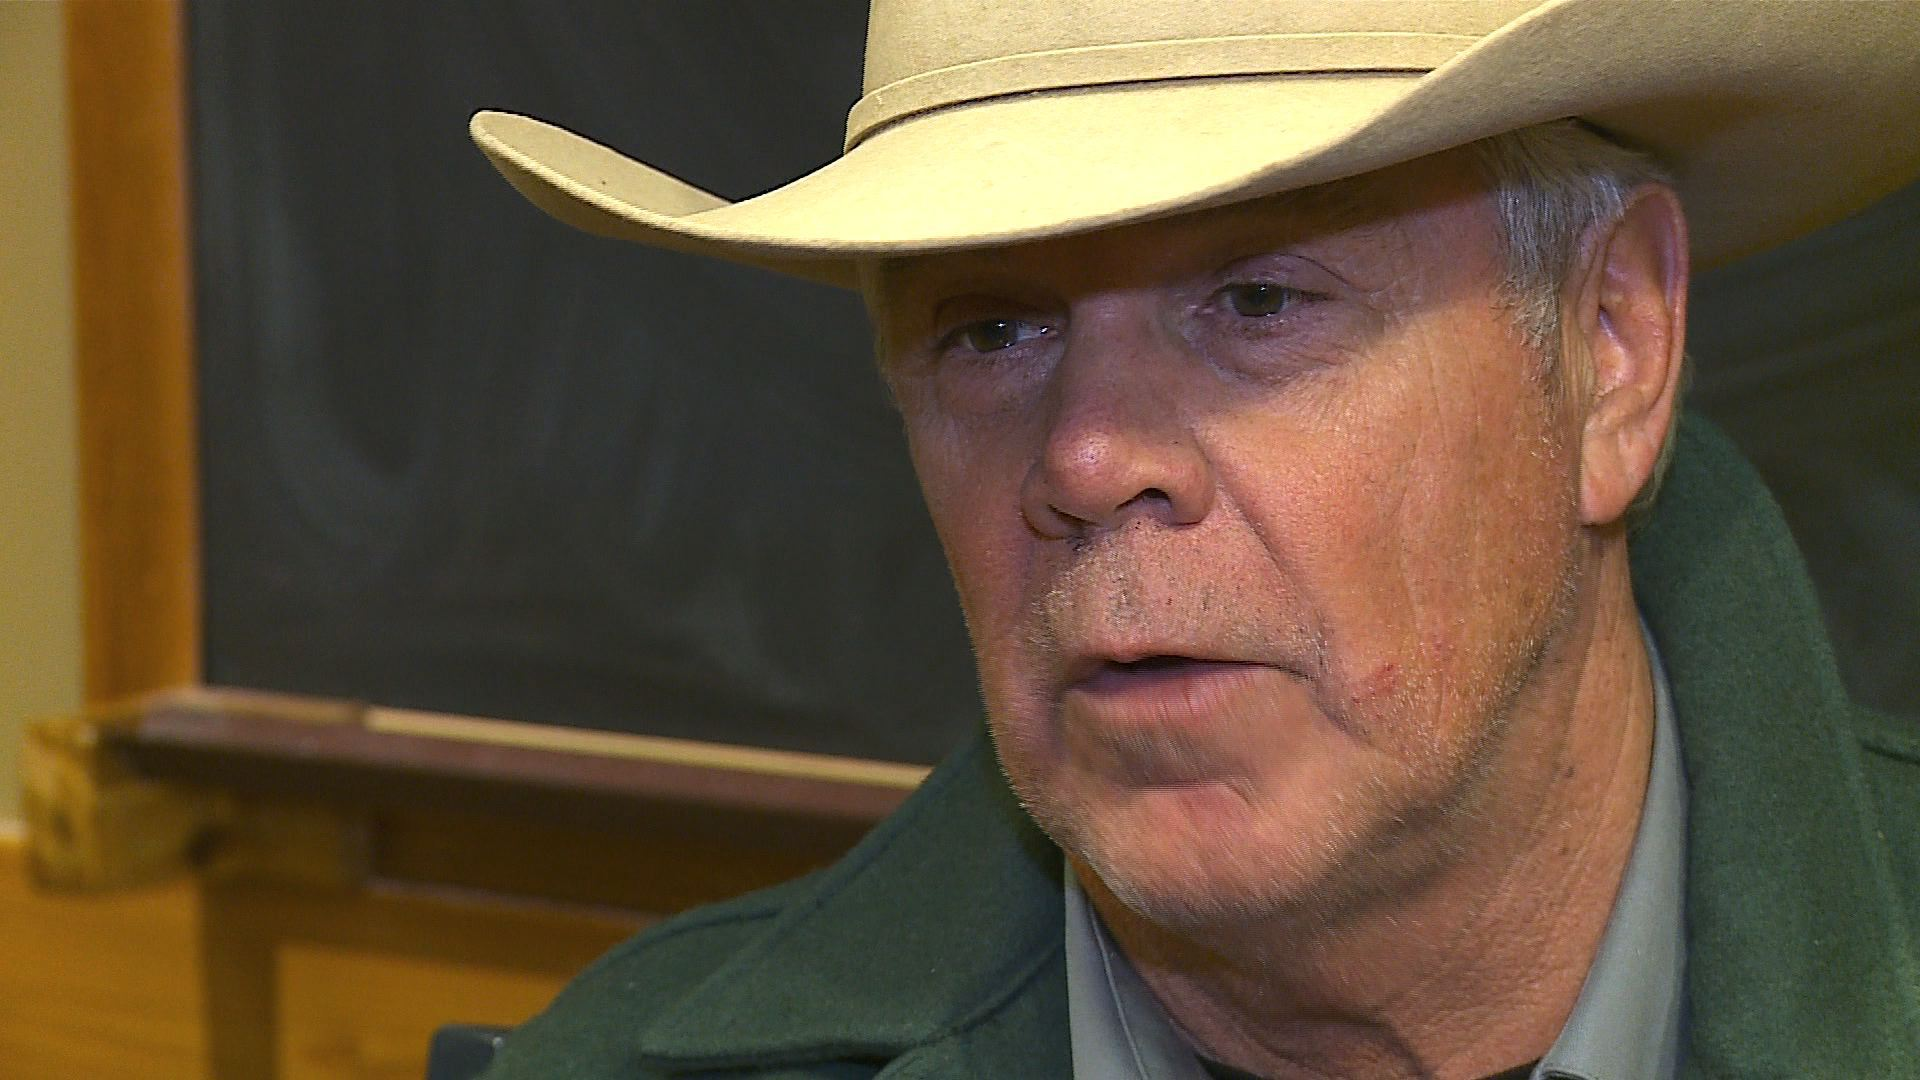 Minnesota State Rep. Tony Cornish, R-Vernon Center, is publicly asking the mall to allow legally armed visitors in response to the terror threat. (Photo: CBS News)